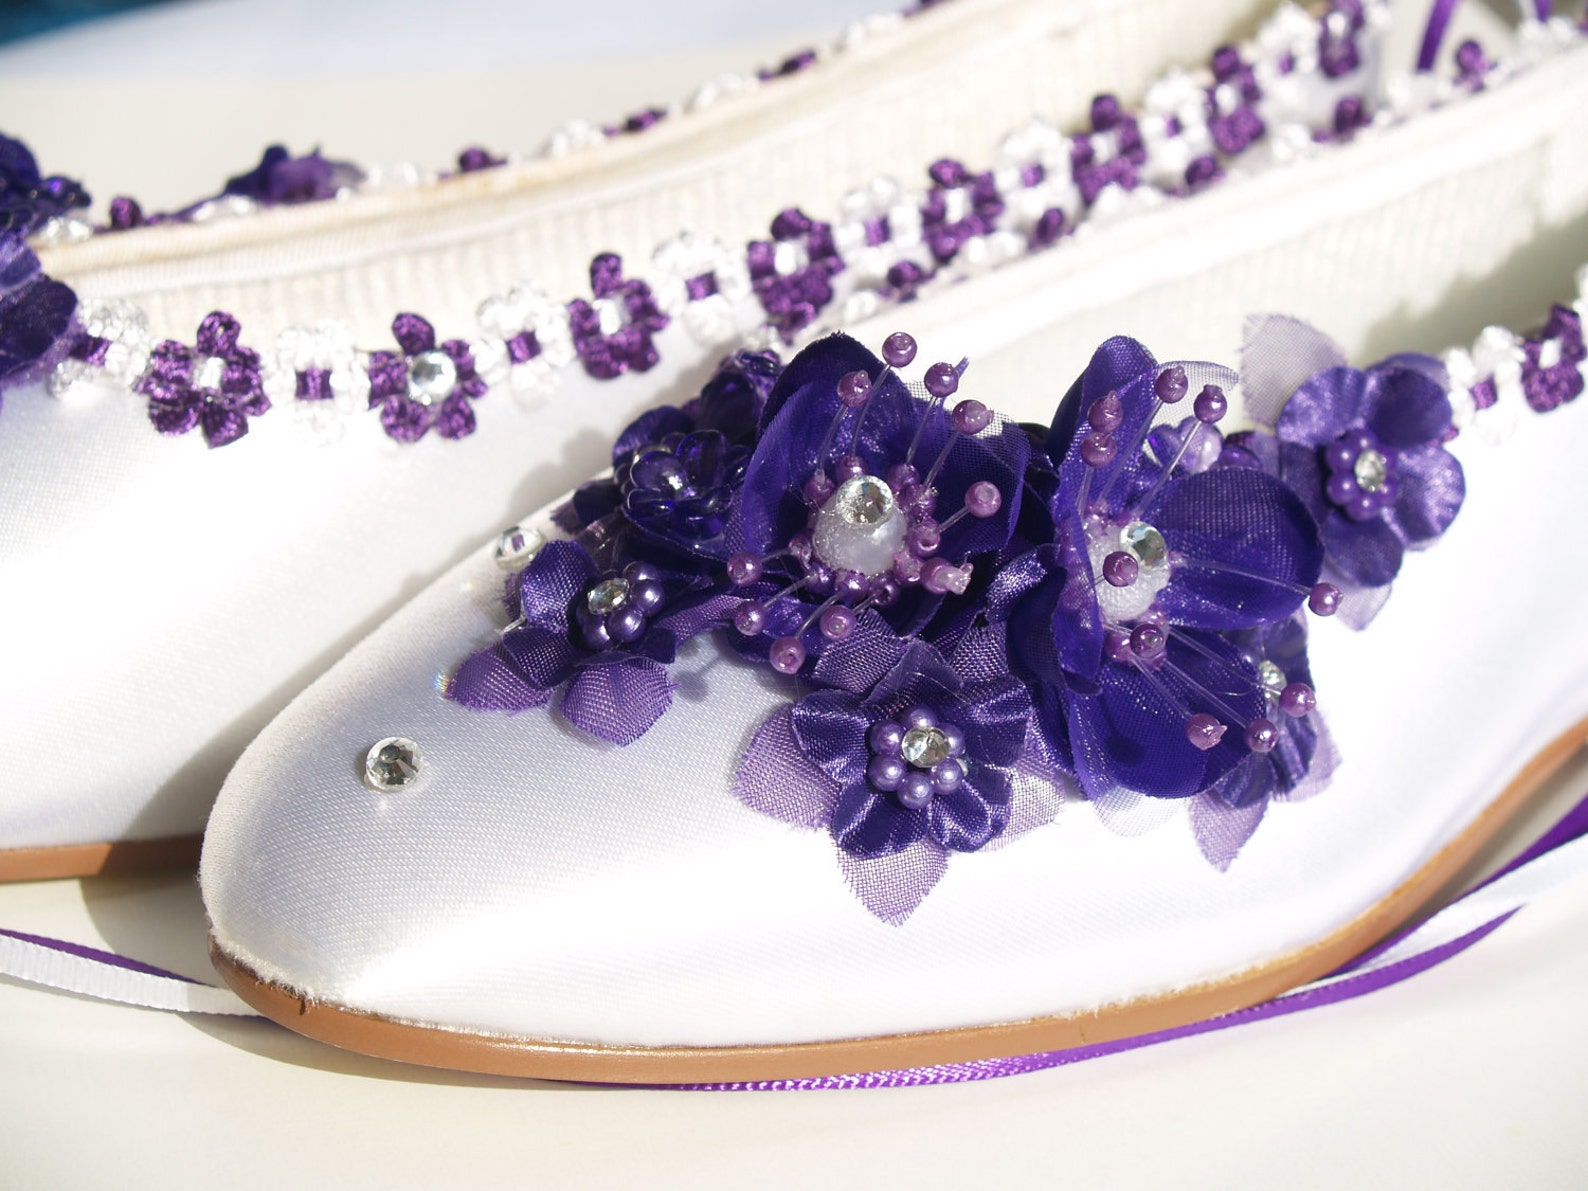 size 6 ready to ship purple silk flowers white satin flats,pearls,crystals, lace up ribbon,satin ballet style slippers,closed to